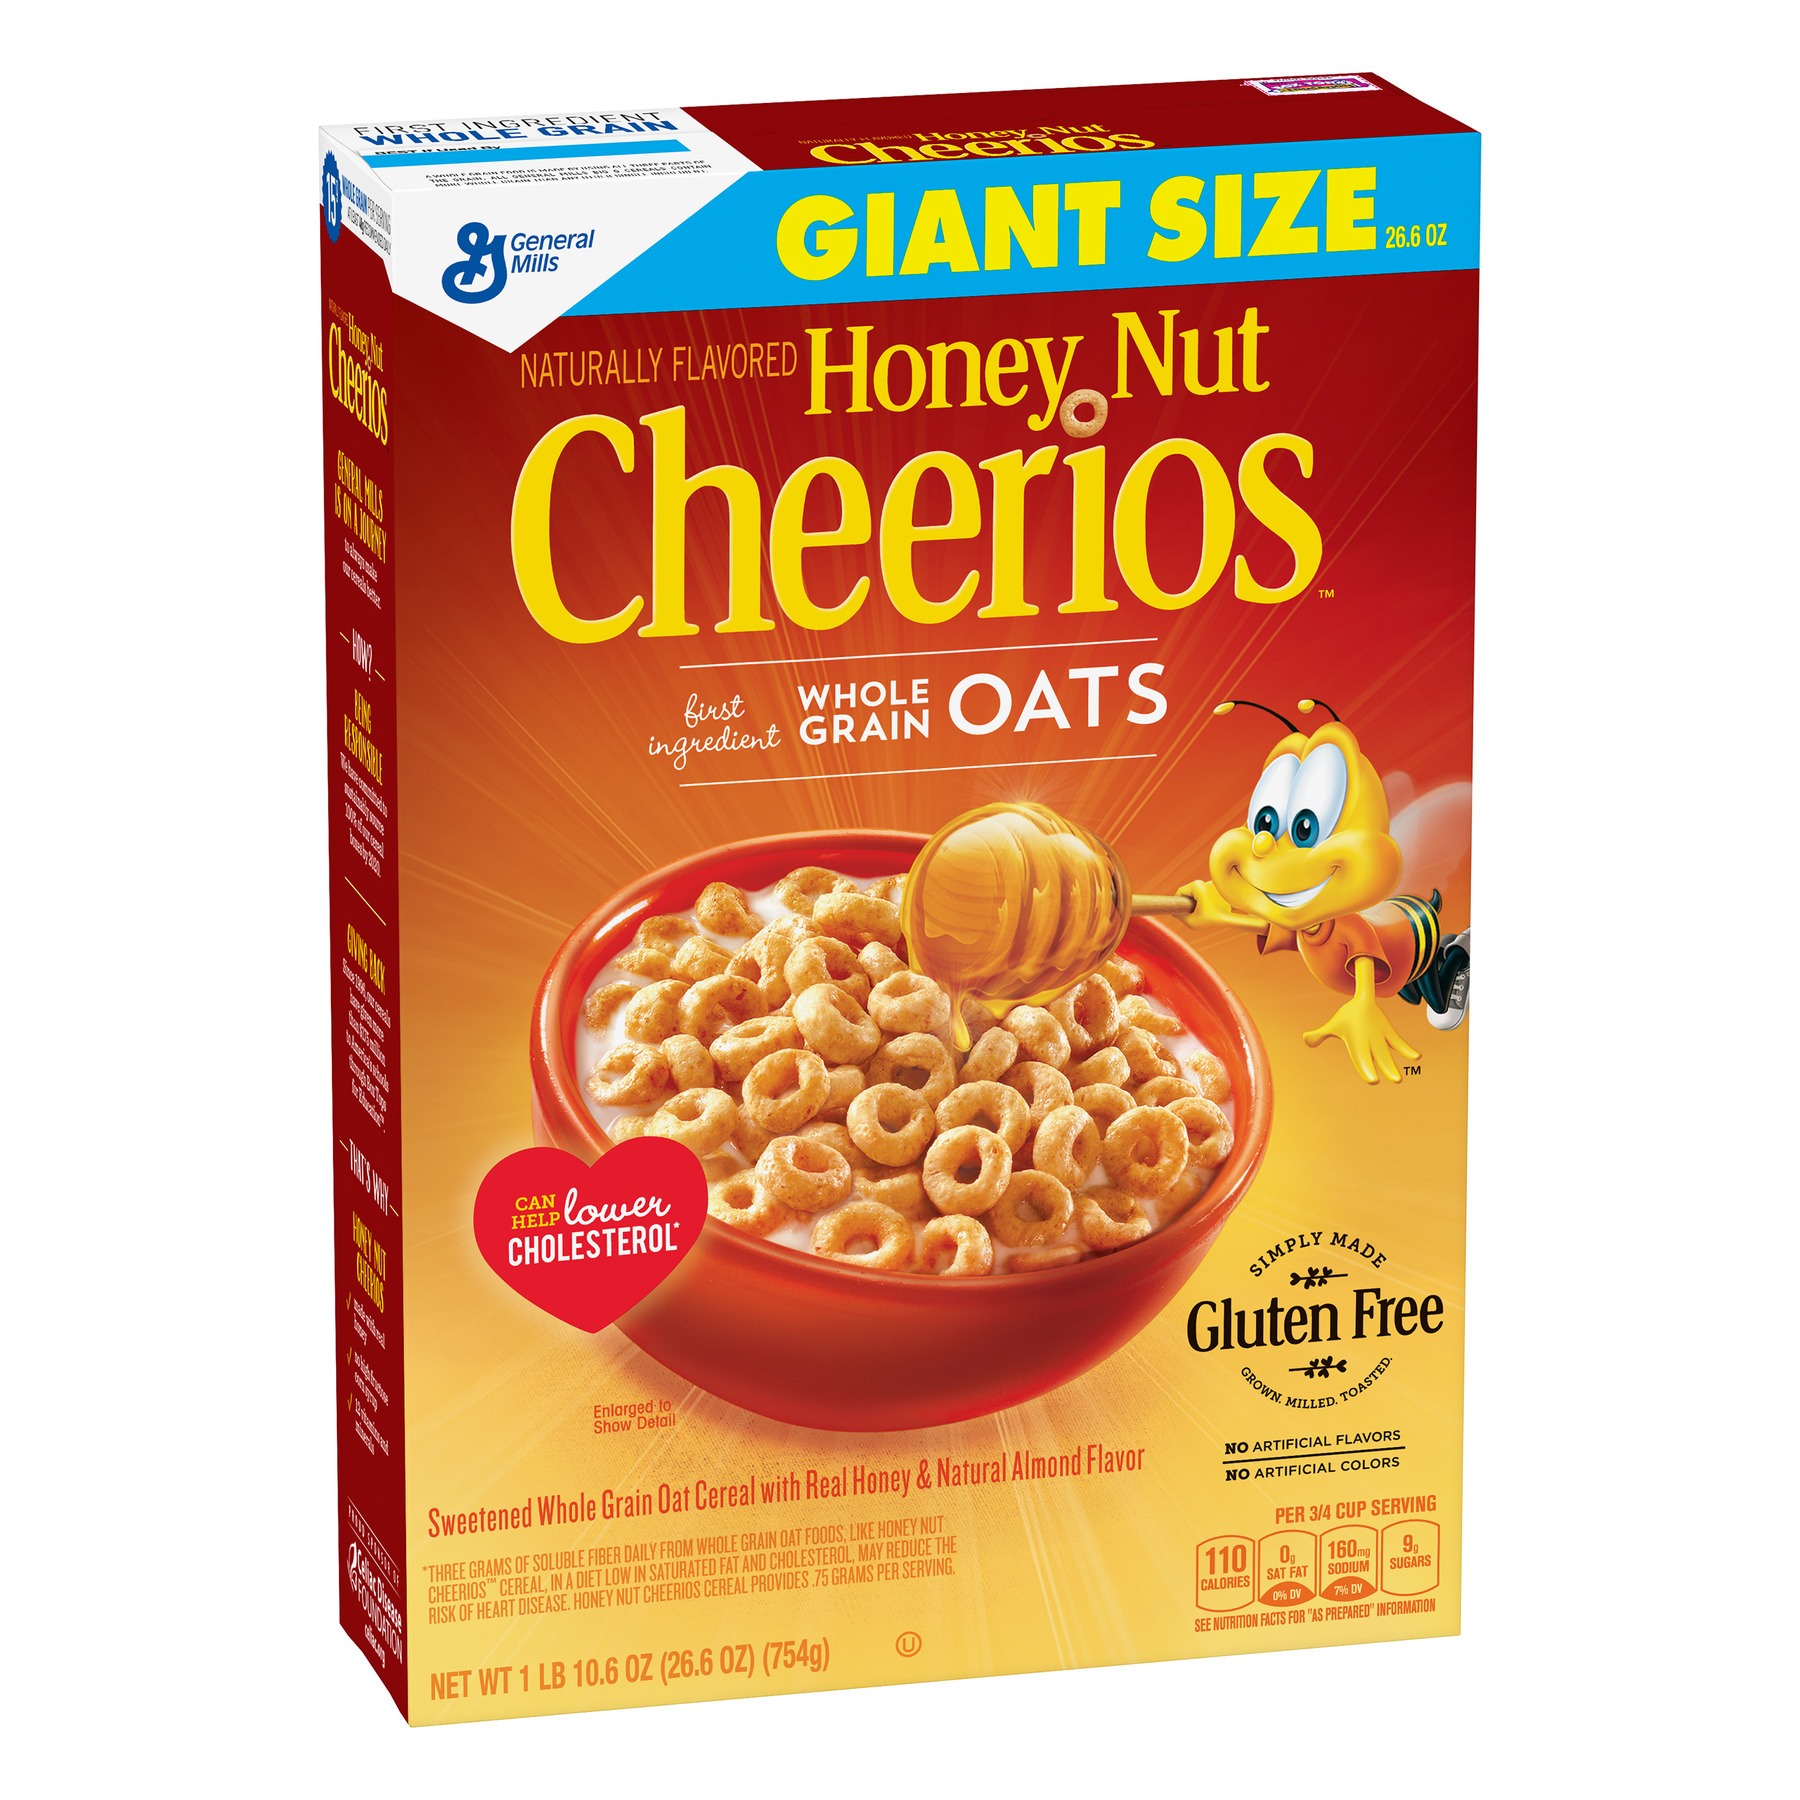 Honey Nut Cheerios Gluten Free 26.6 oz Giant Size Cereal